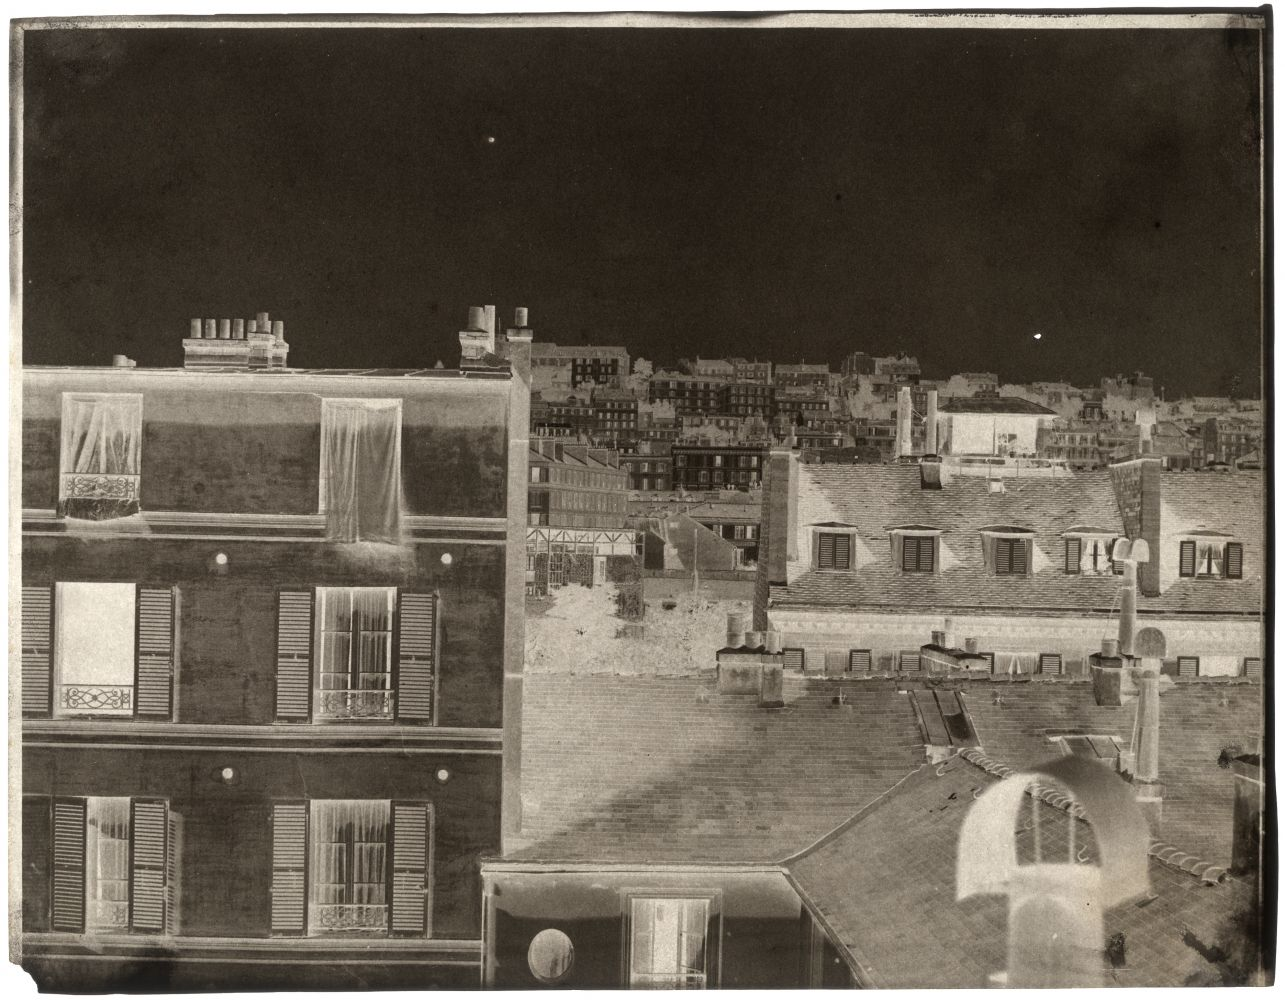 John Beasley GREENE (American, born in France, 1832-1856) Rooftops, Paris*, 1852-1853 or earlier Waxed paper negative 24.3 x 31.2 cm